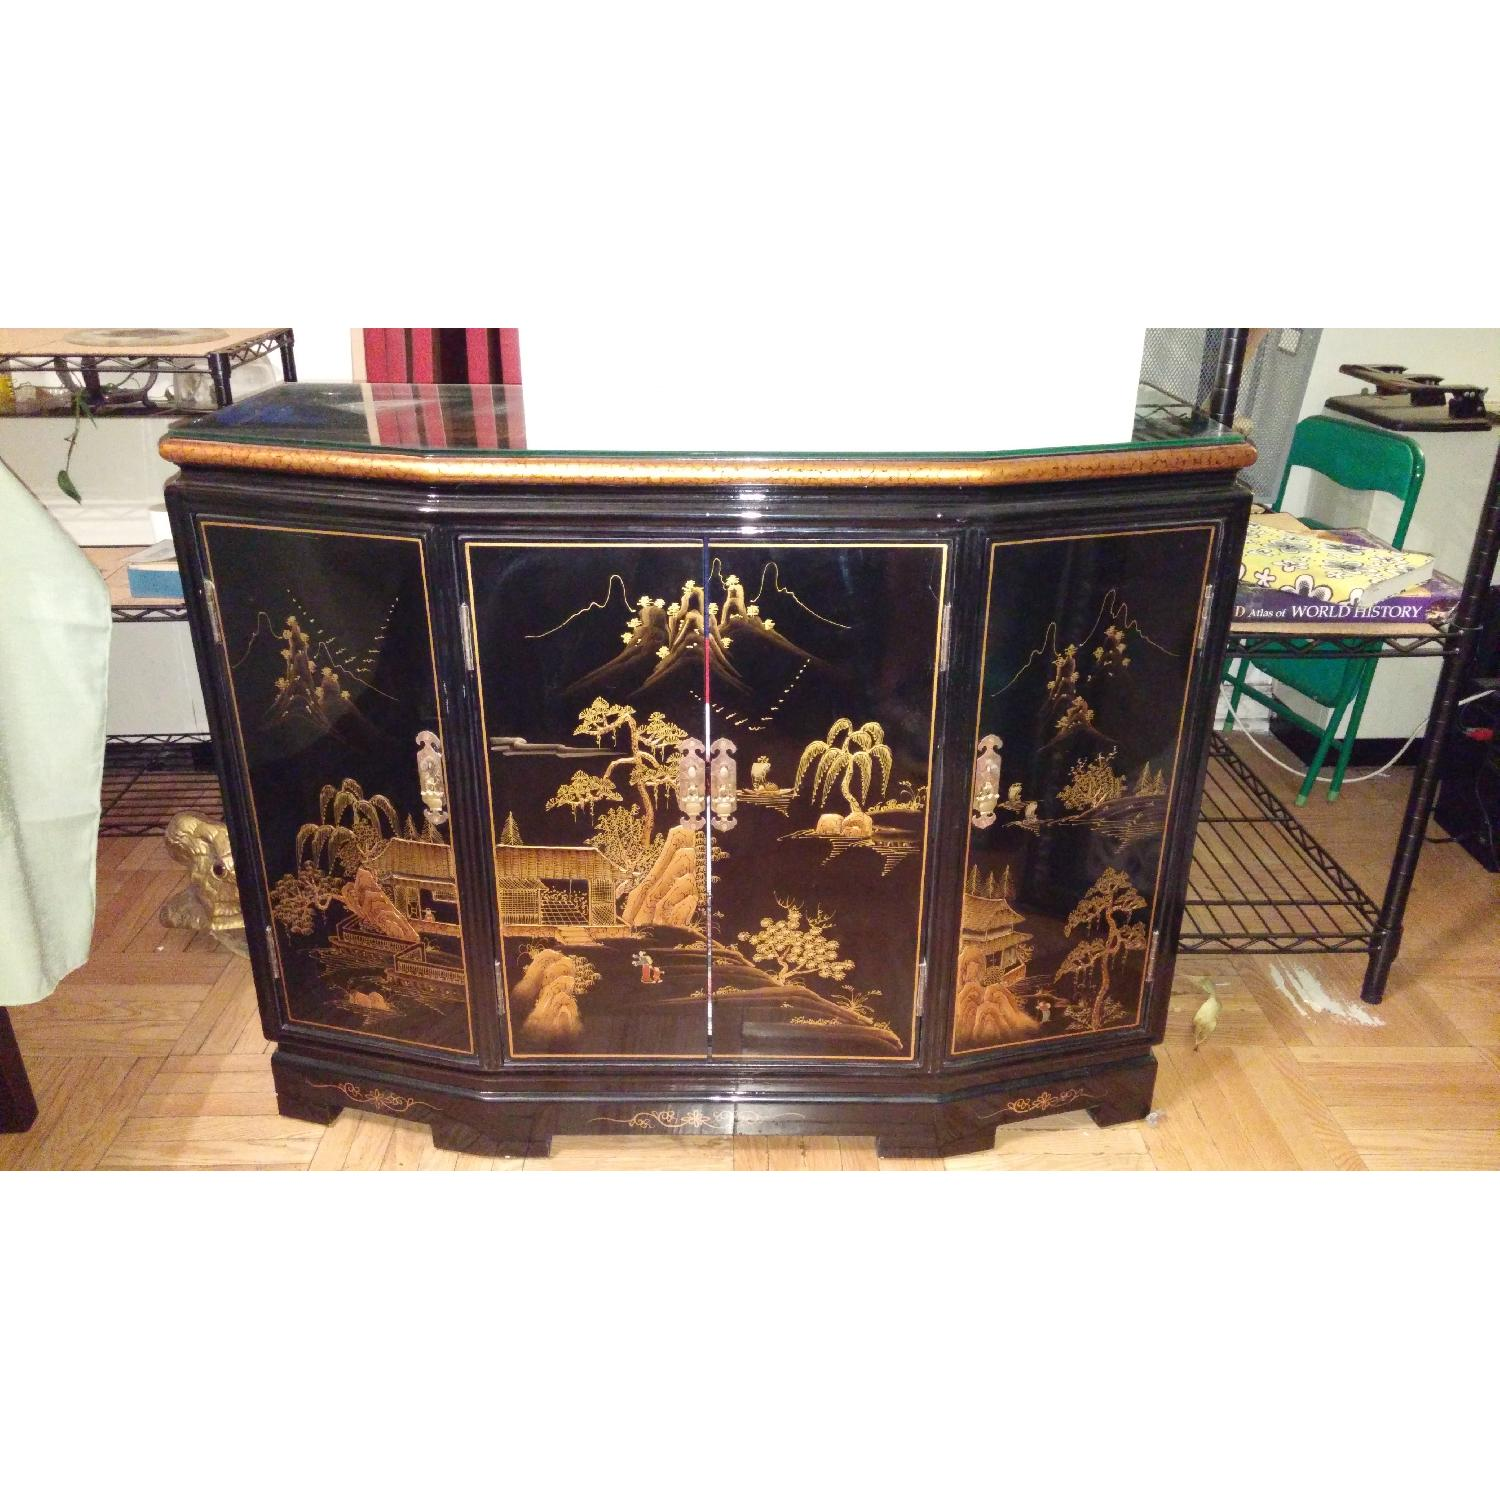 Vintage Chinese Lacquer Cabinet - image-1